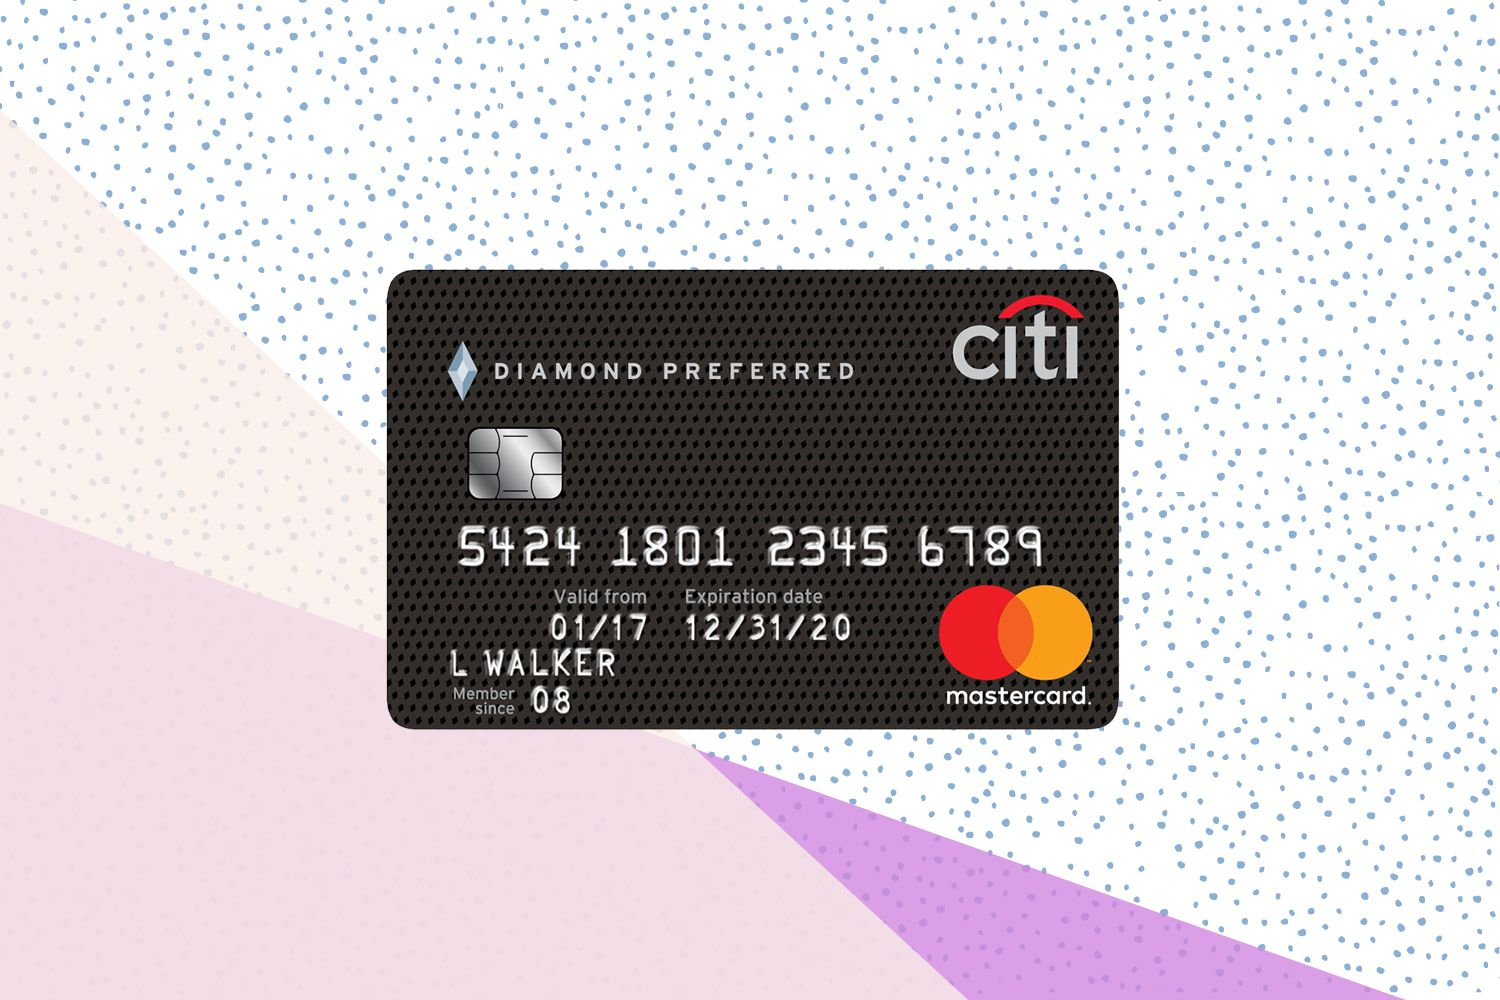 Citi Diamond Preferred Review